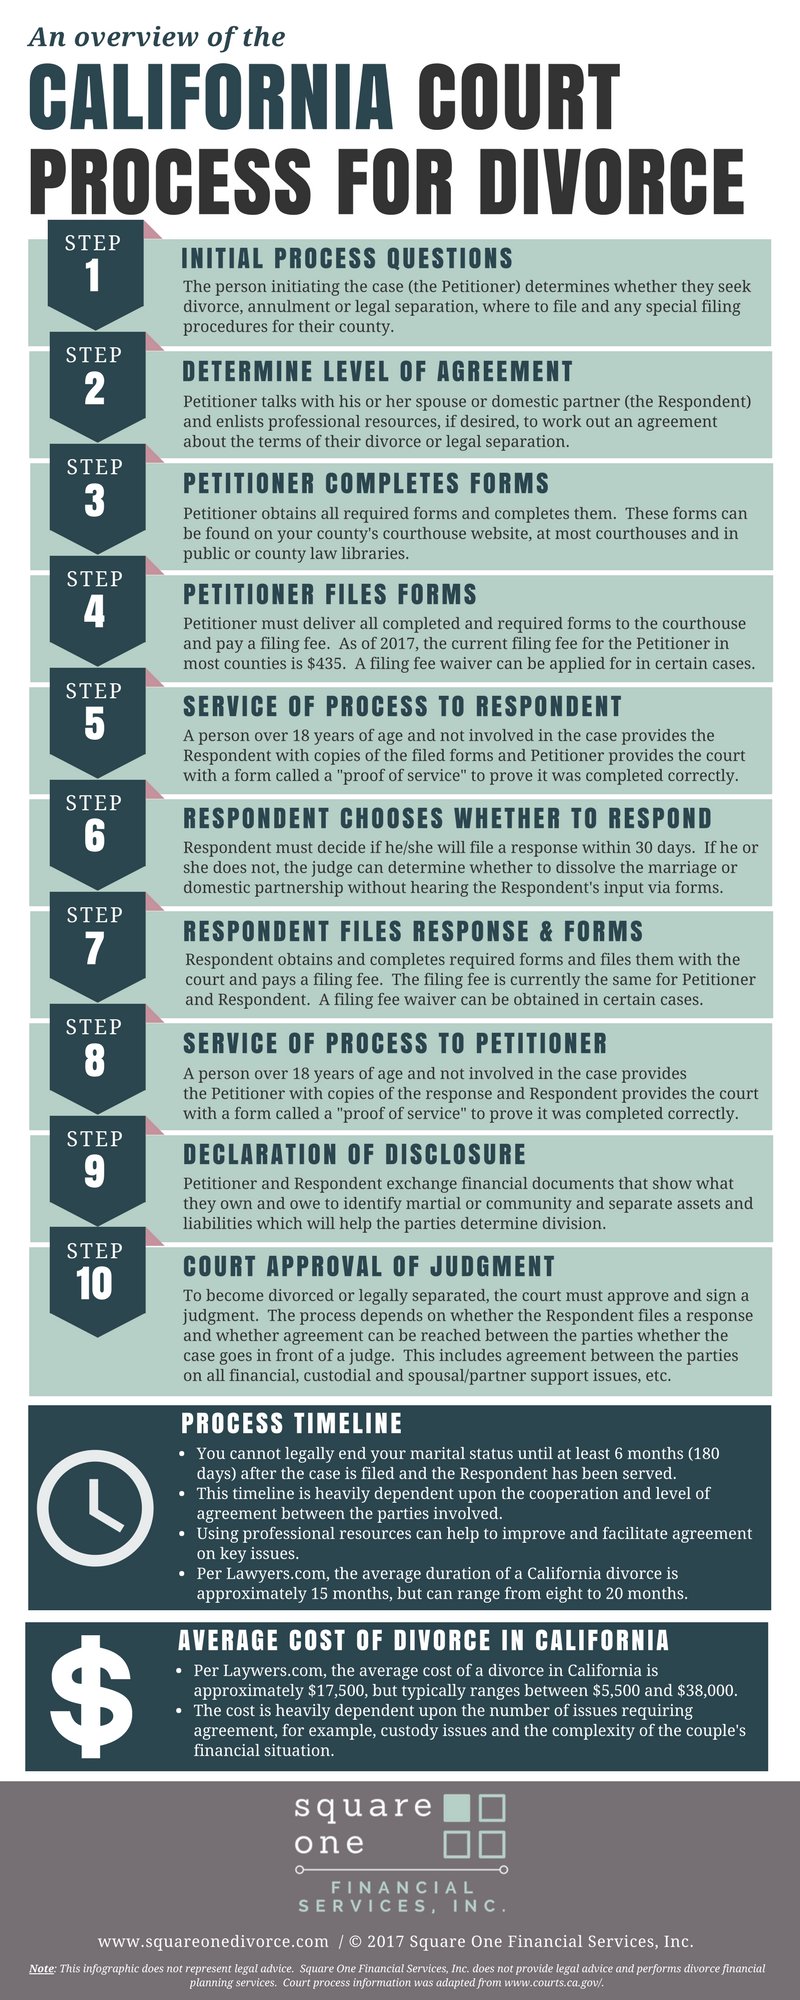 California Court Process for Divorce.png